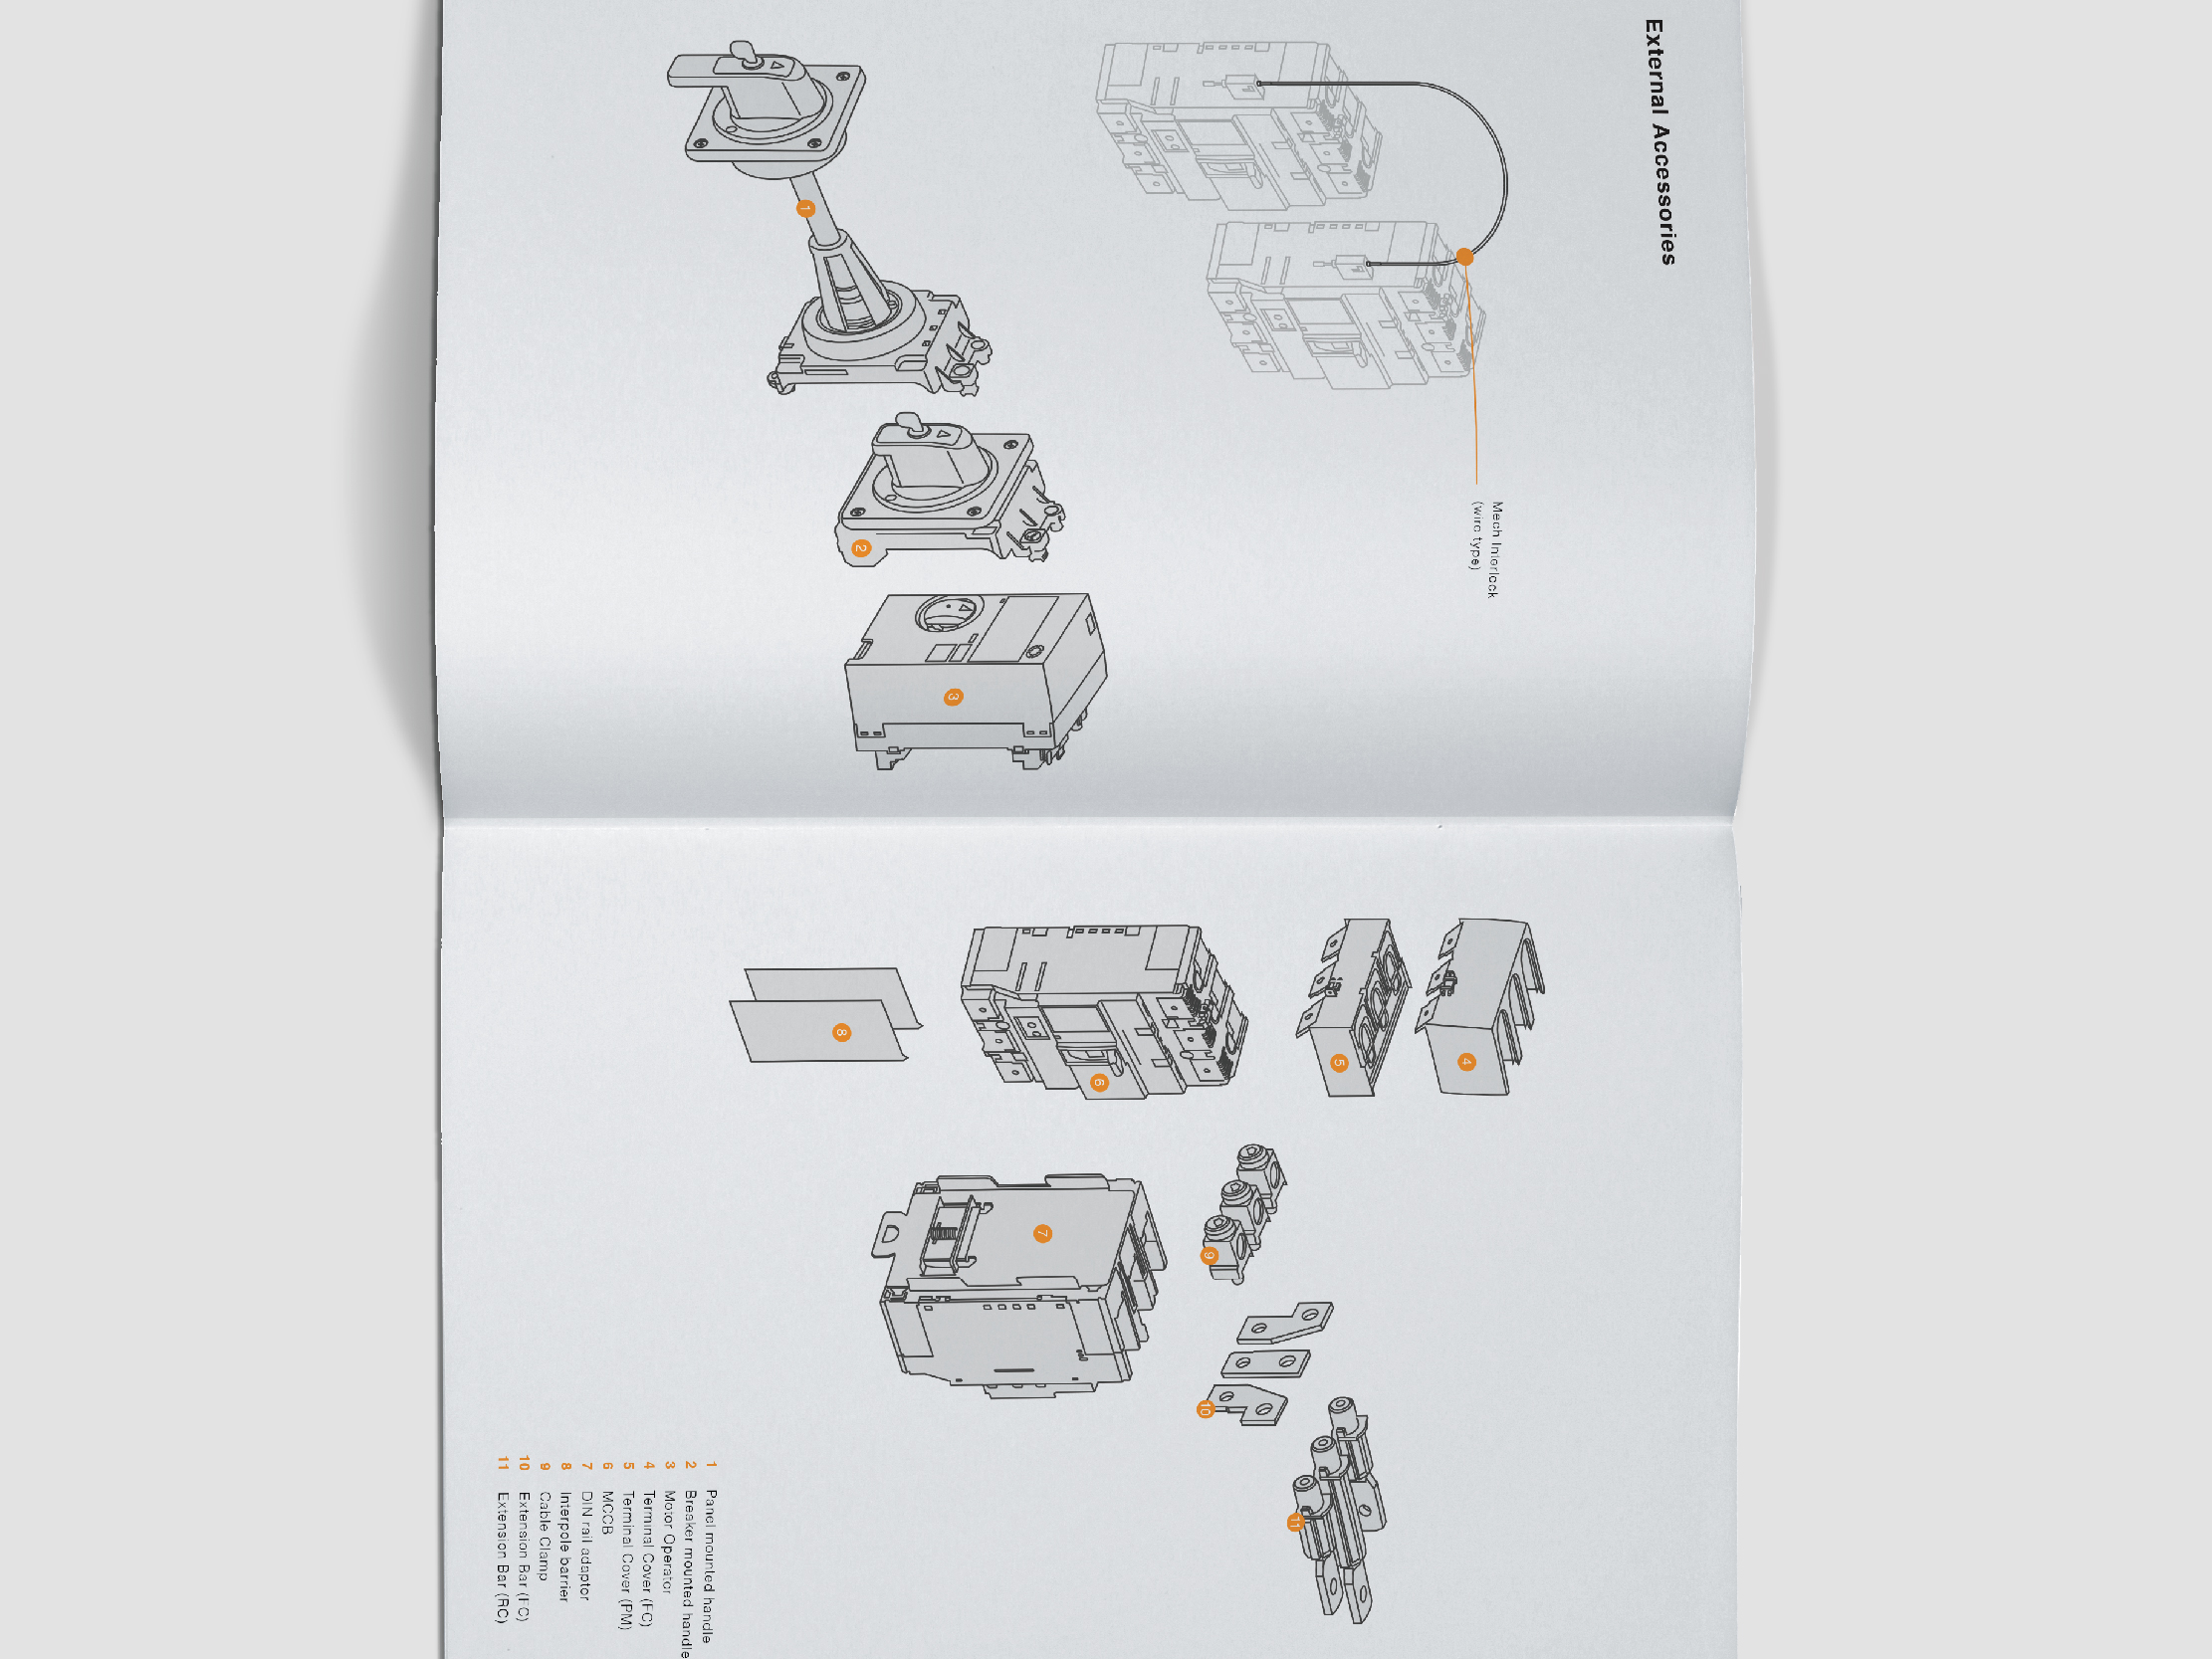 Terasaki Electric company profile inner pages clean layout design with product illustration and technical drawings